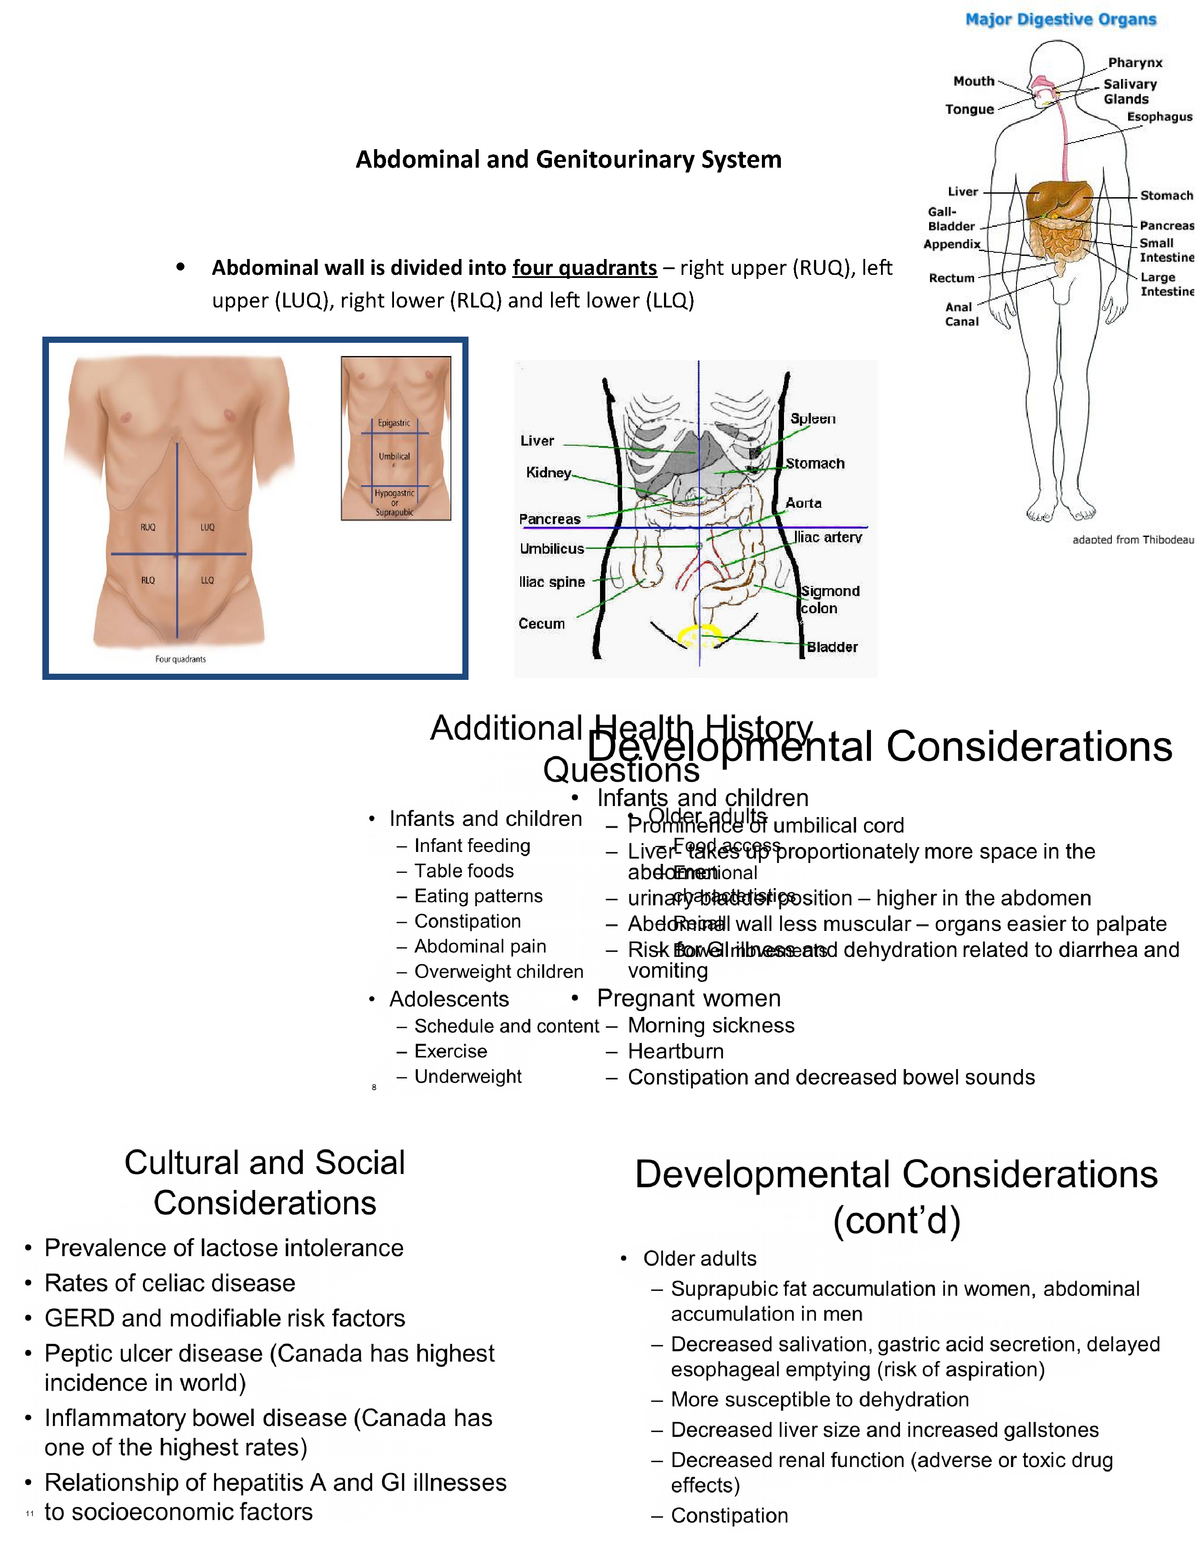 8 Abdominal and Genitourinary System - NSG2317T: Health